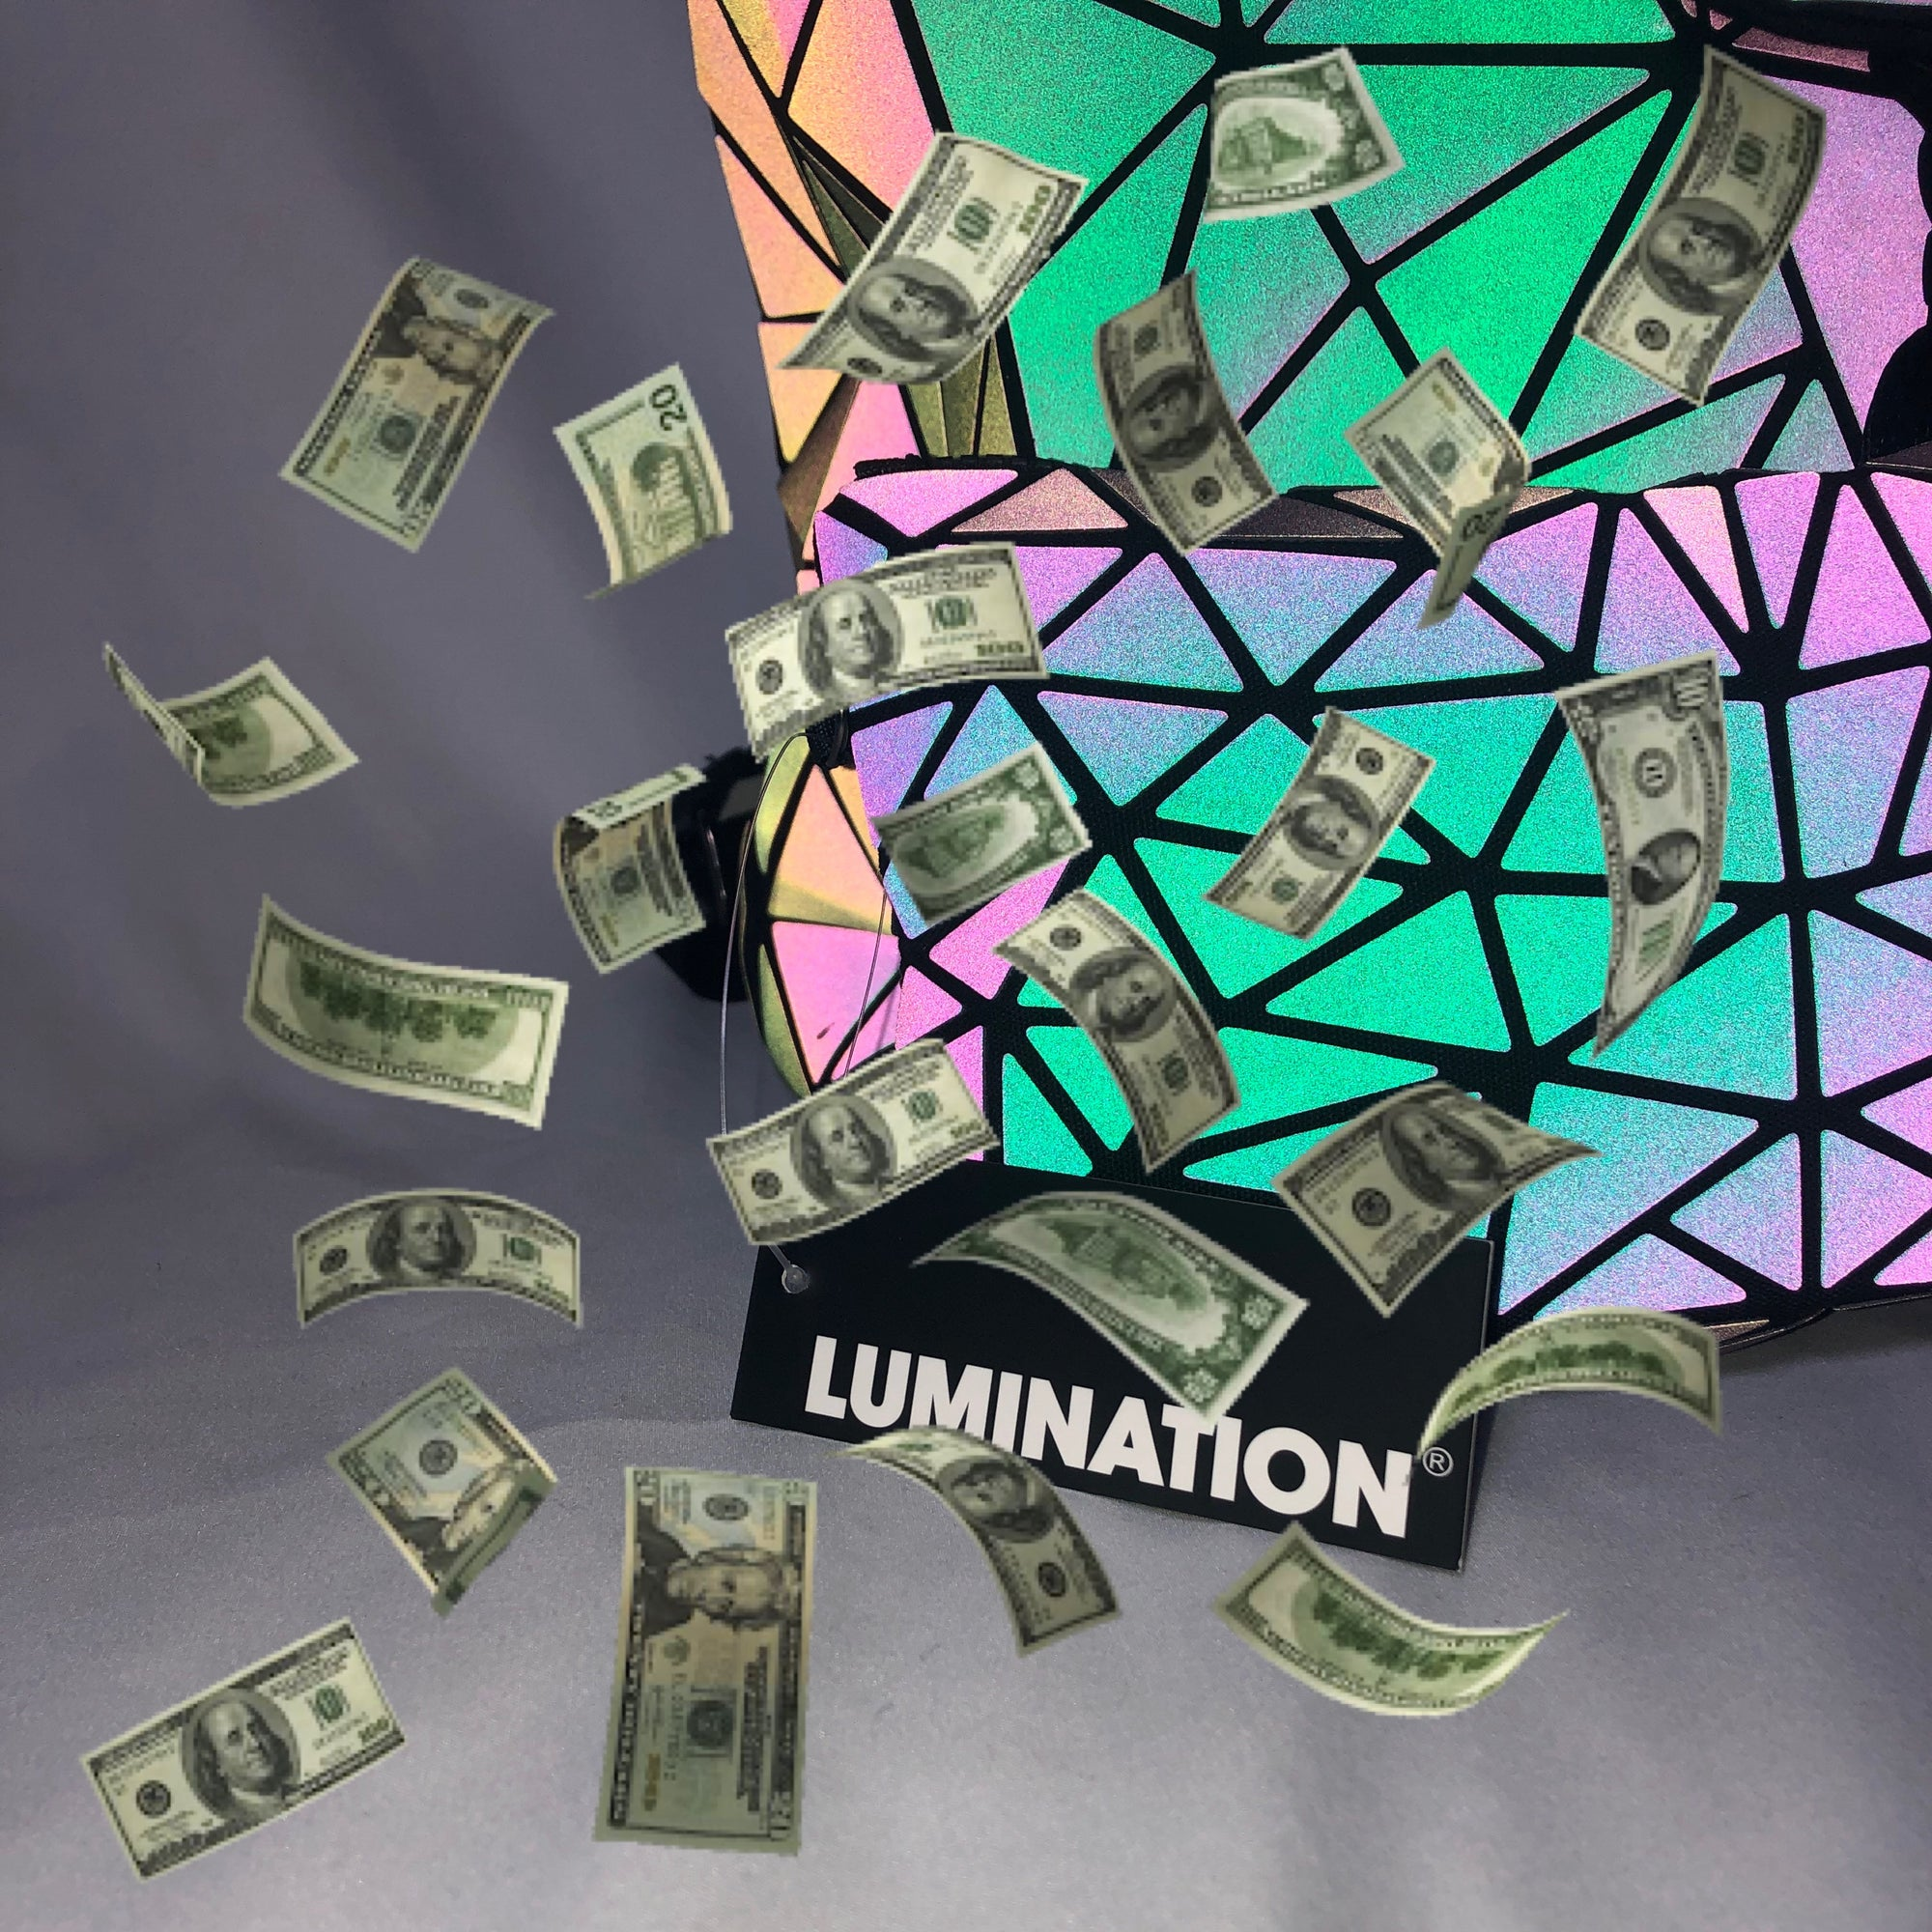 How Lumination Can Help You Save Money During Quarantine